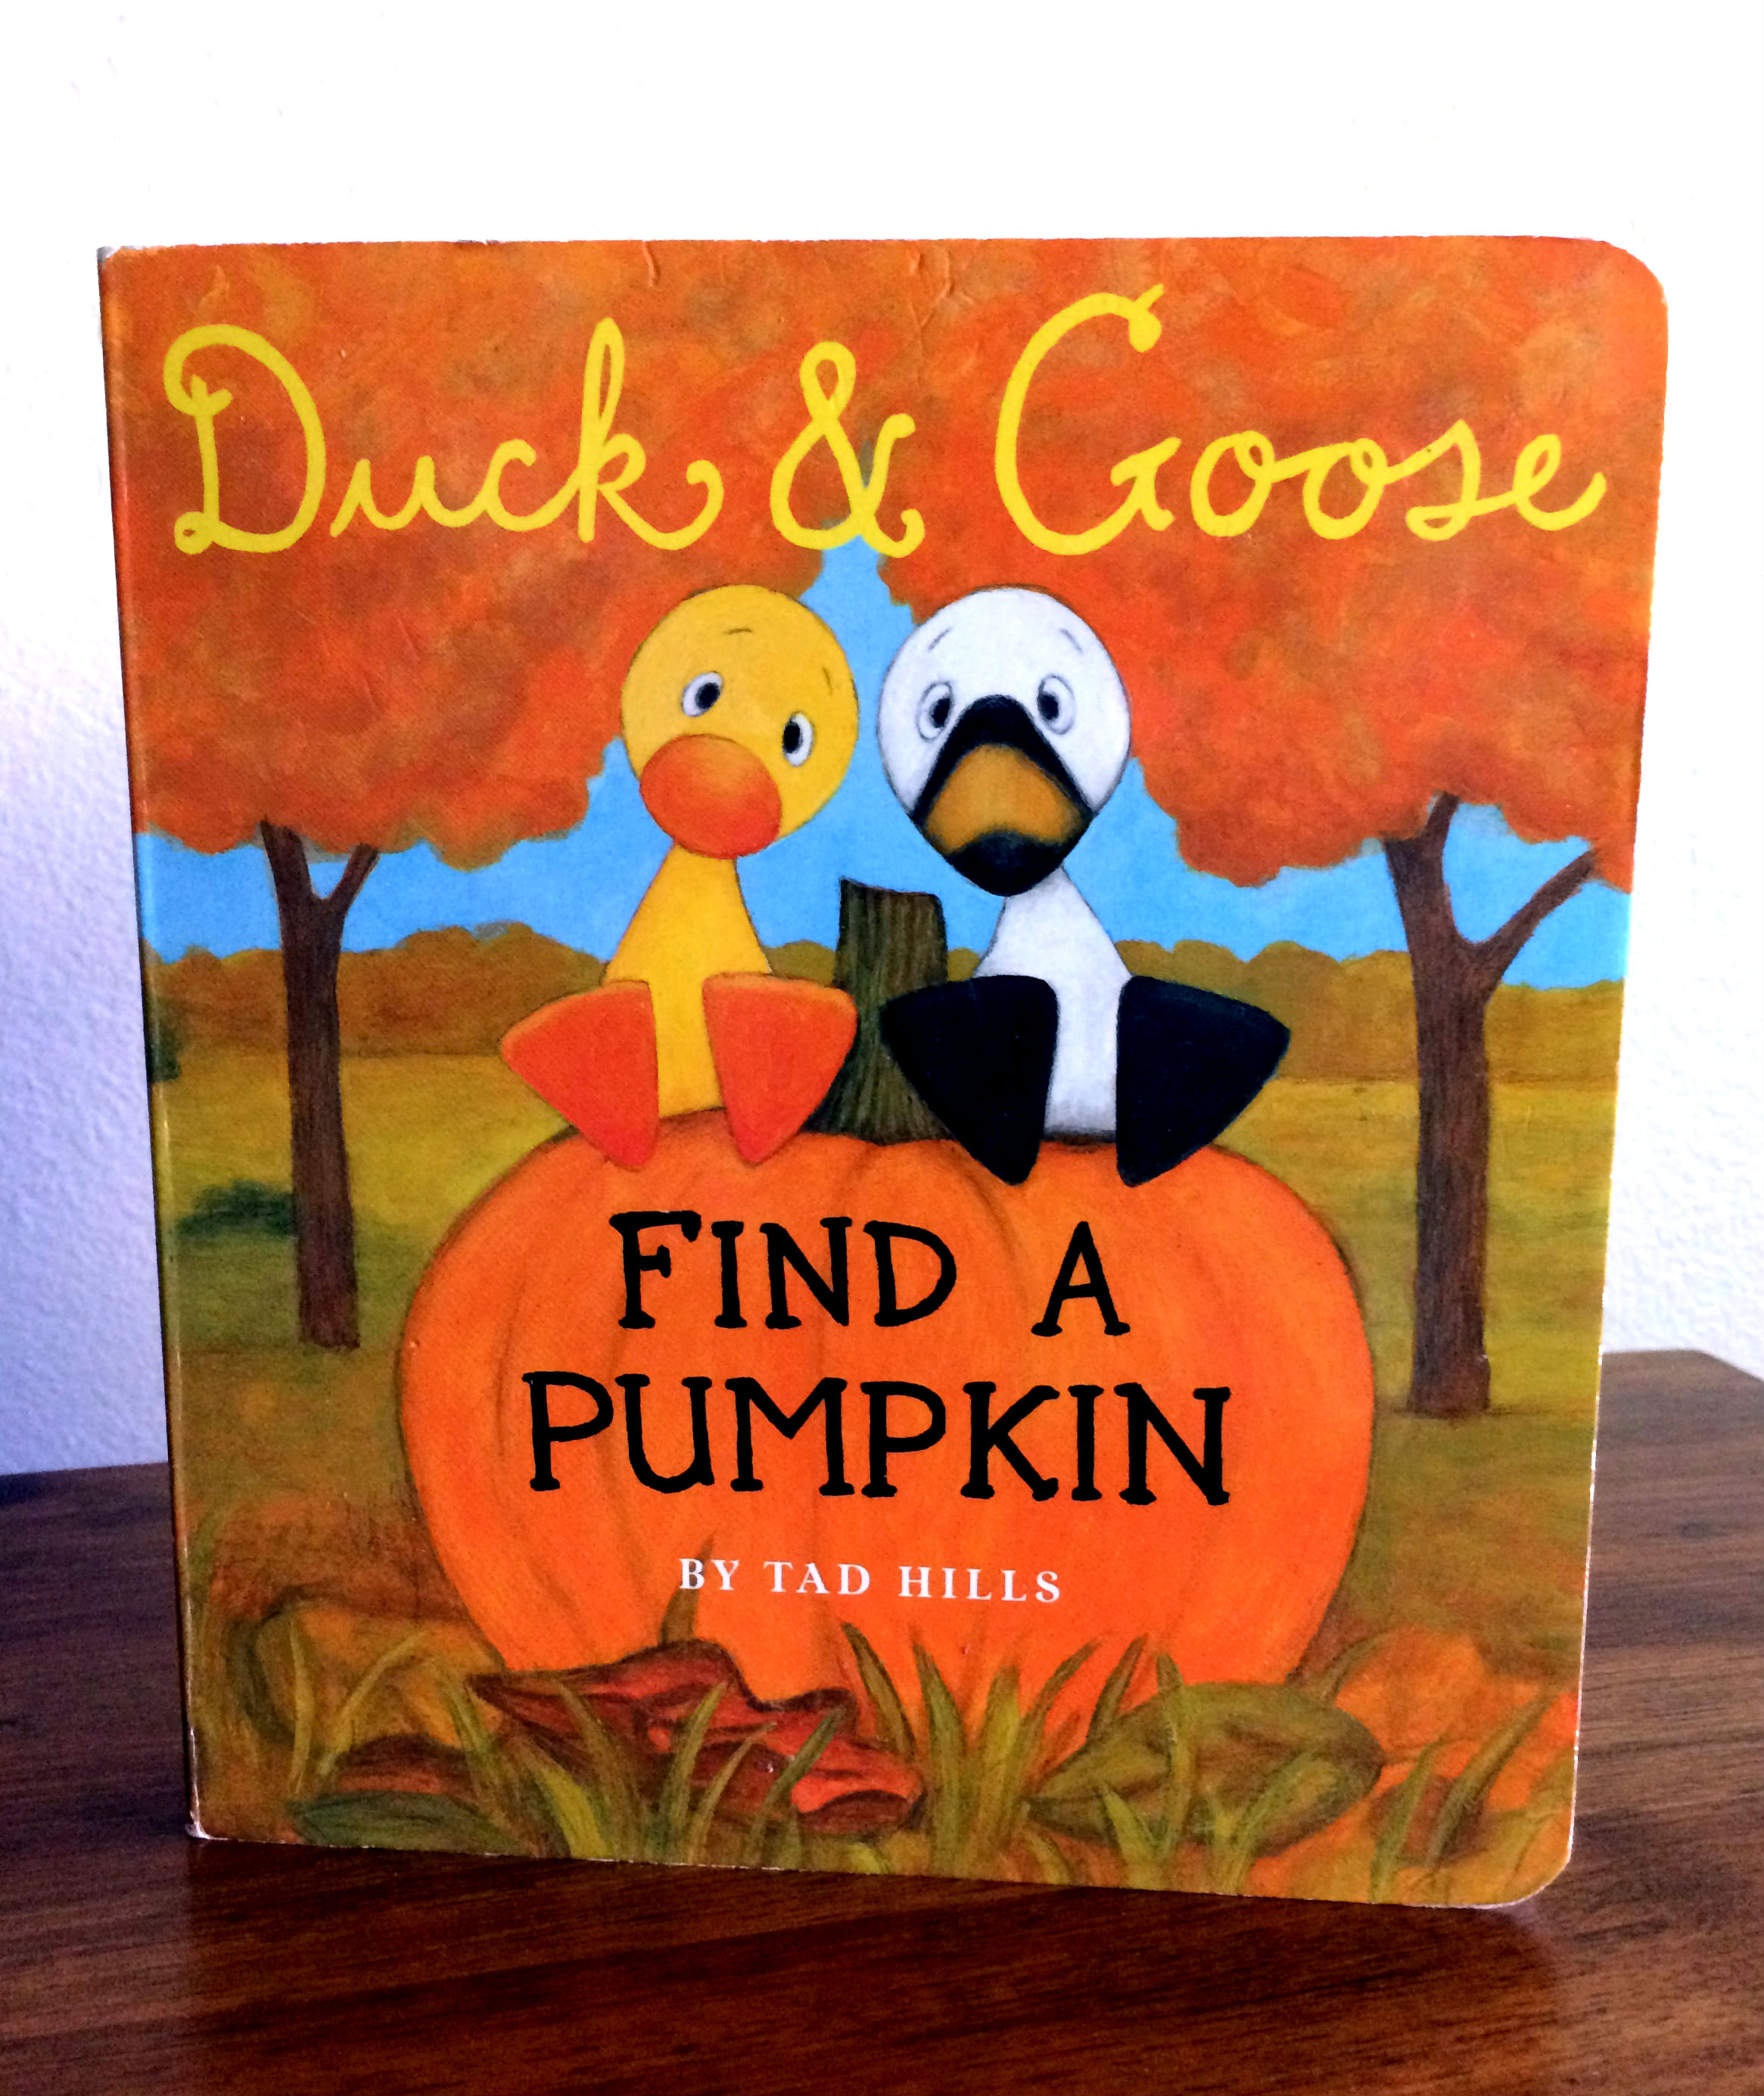 Duck and Goose Find a Pumpkin edited.jpg